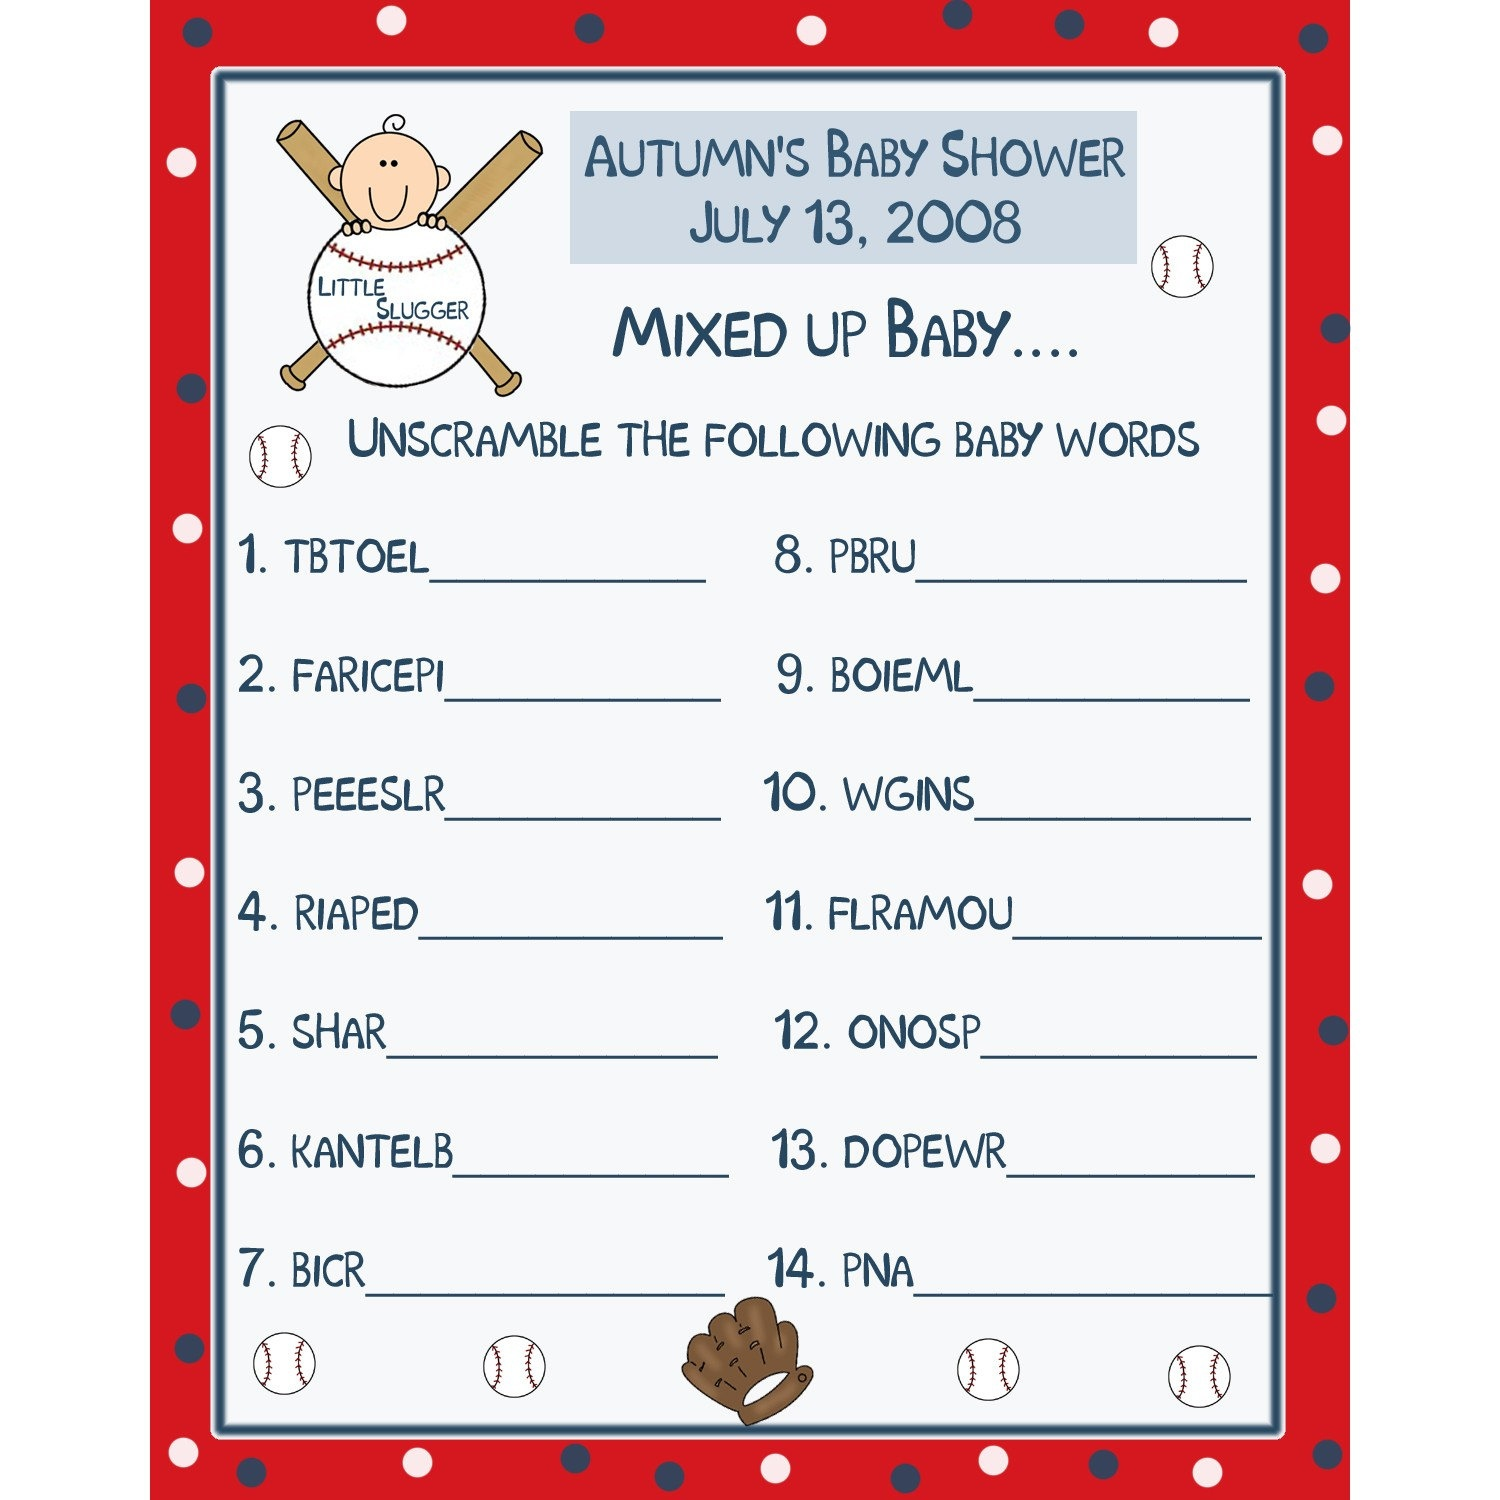 Get Free Baby Things Online Outlet, Free Baby Shower Games In - Free Printable Baby Shower Games In Spanish